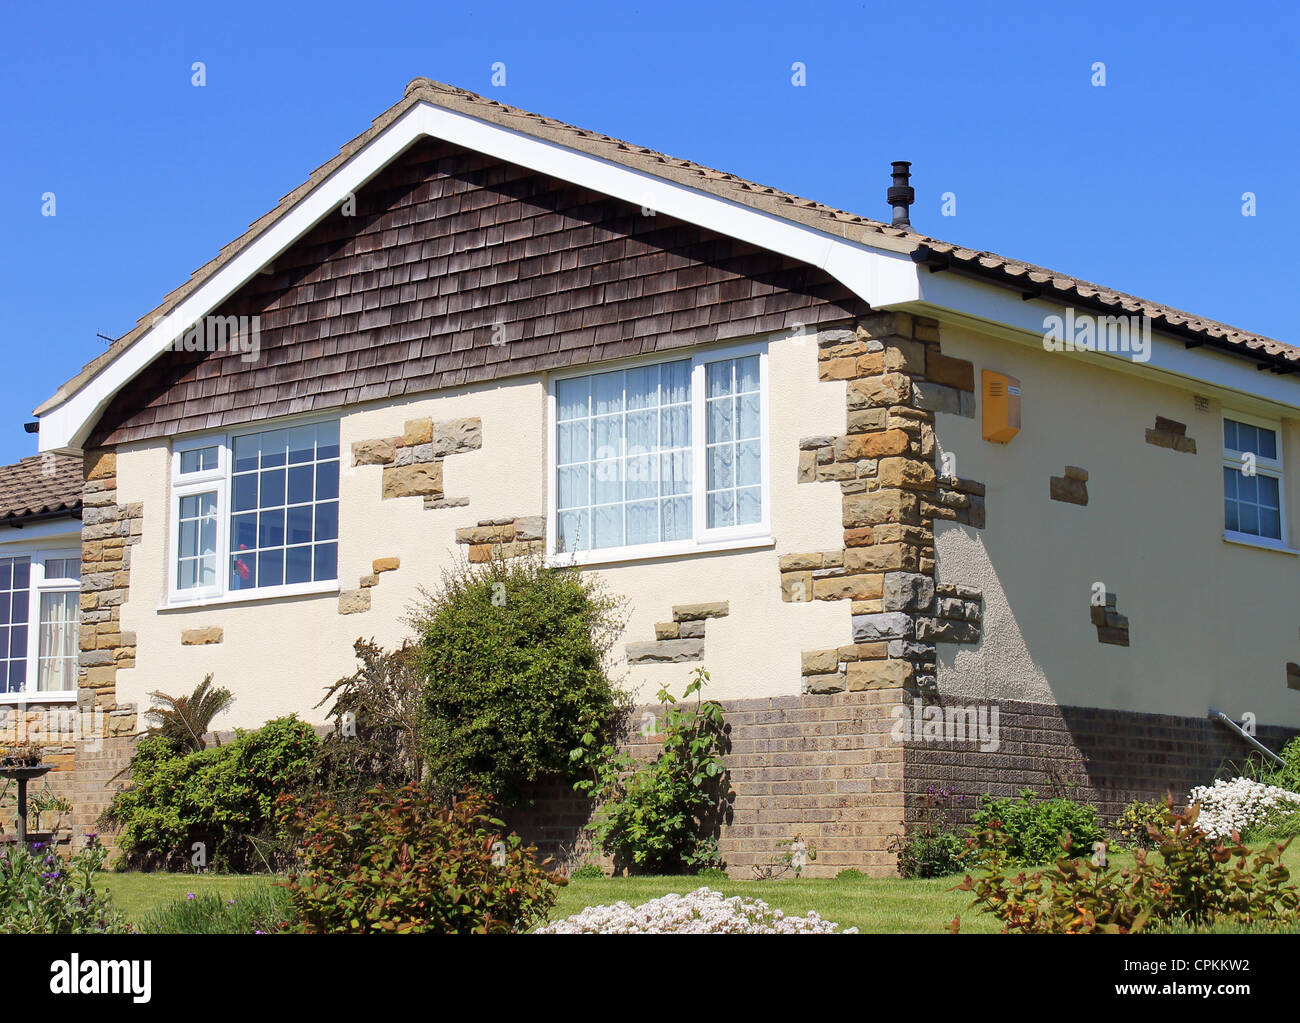 Facade Of Bungalow House High Resolution Stock Photography And Images Alamy